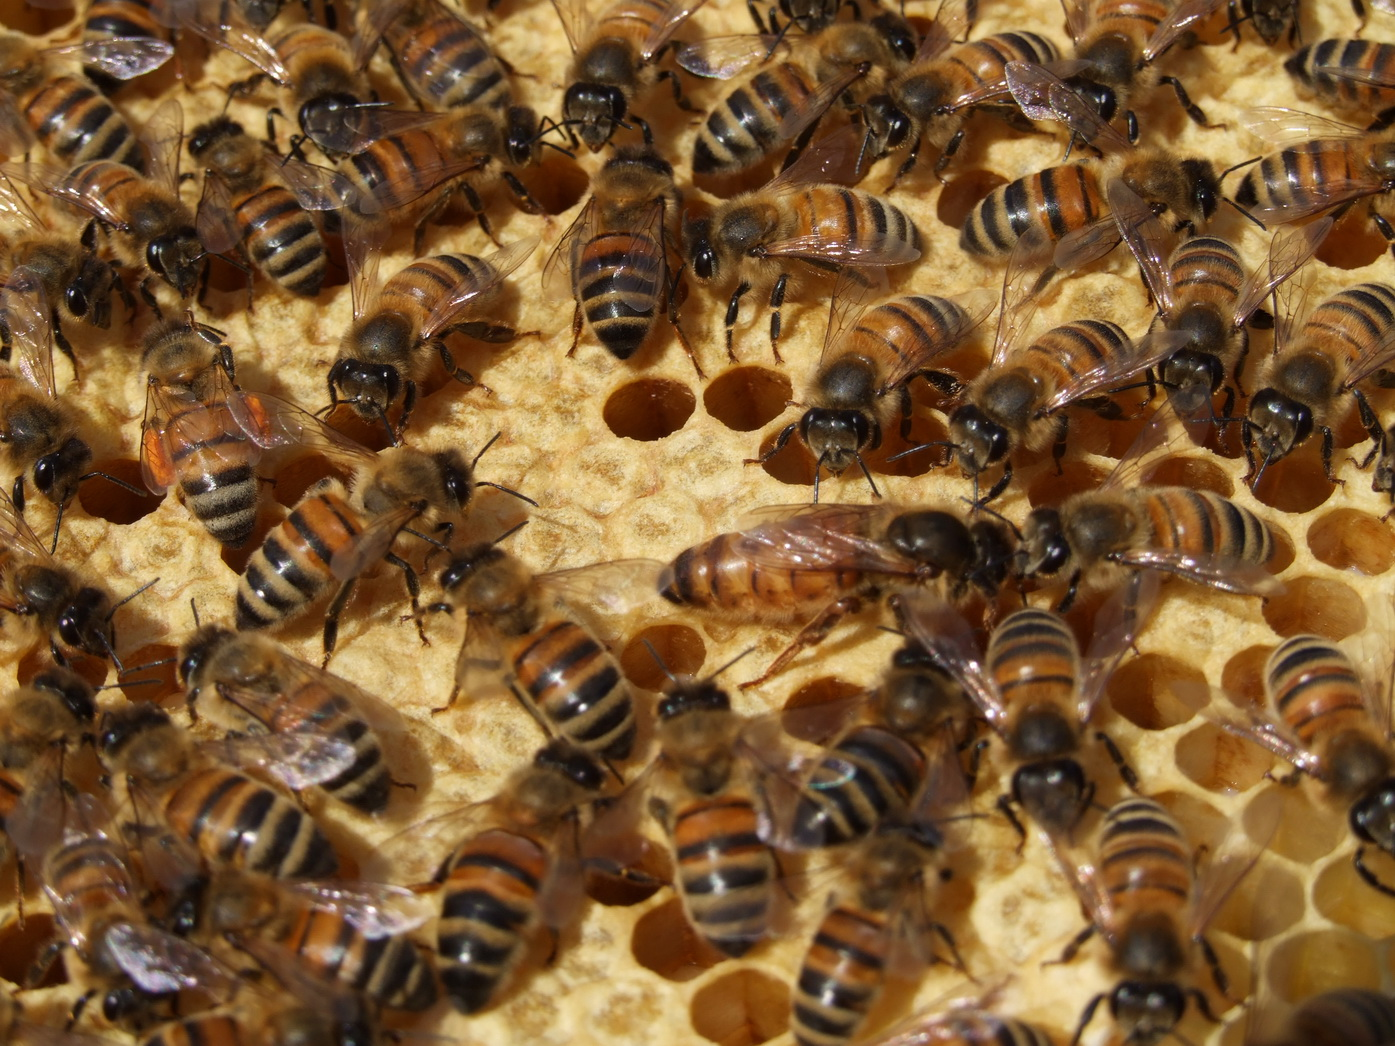 honey bee: Bees for Sale and now we are going Top Bar